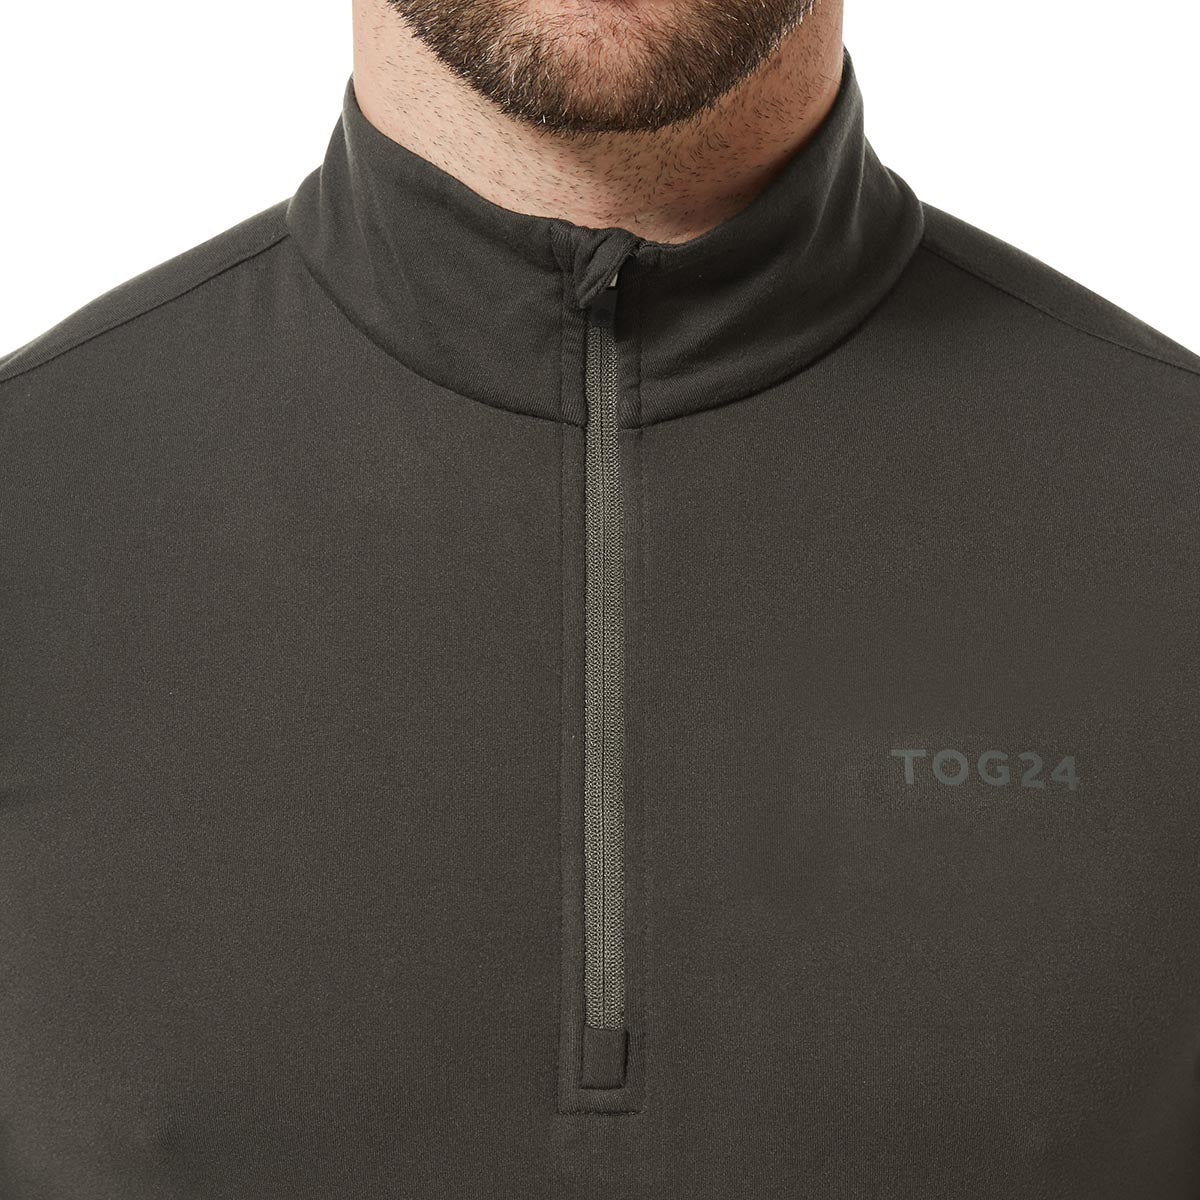 Robinson Mens Performance Zipneck - Charcoal image 4